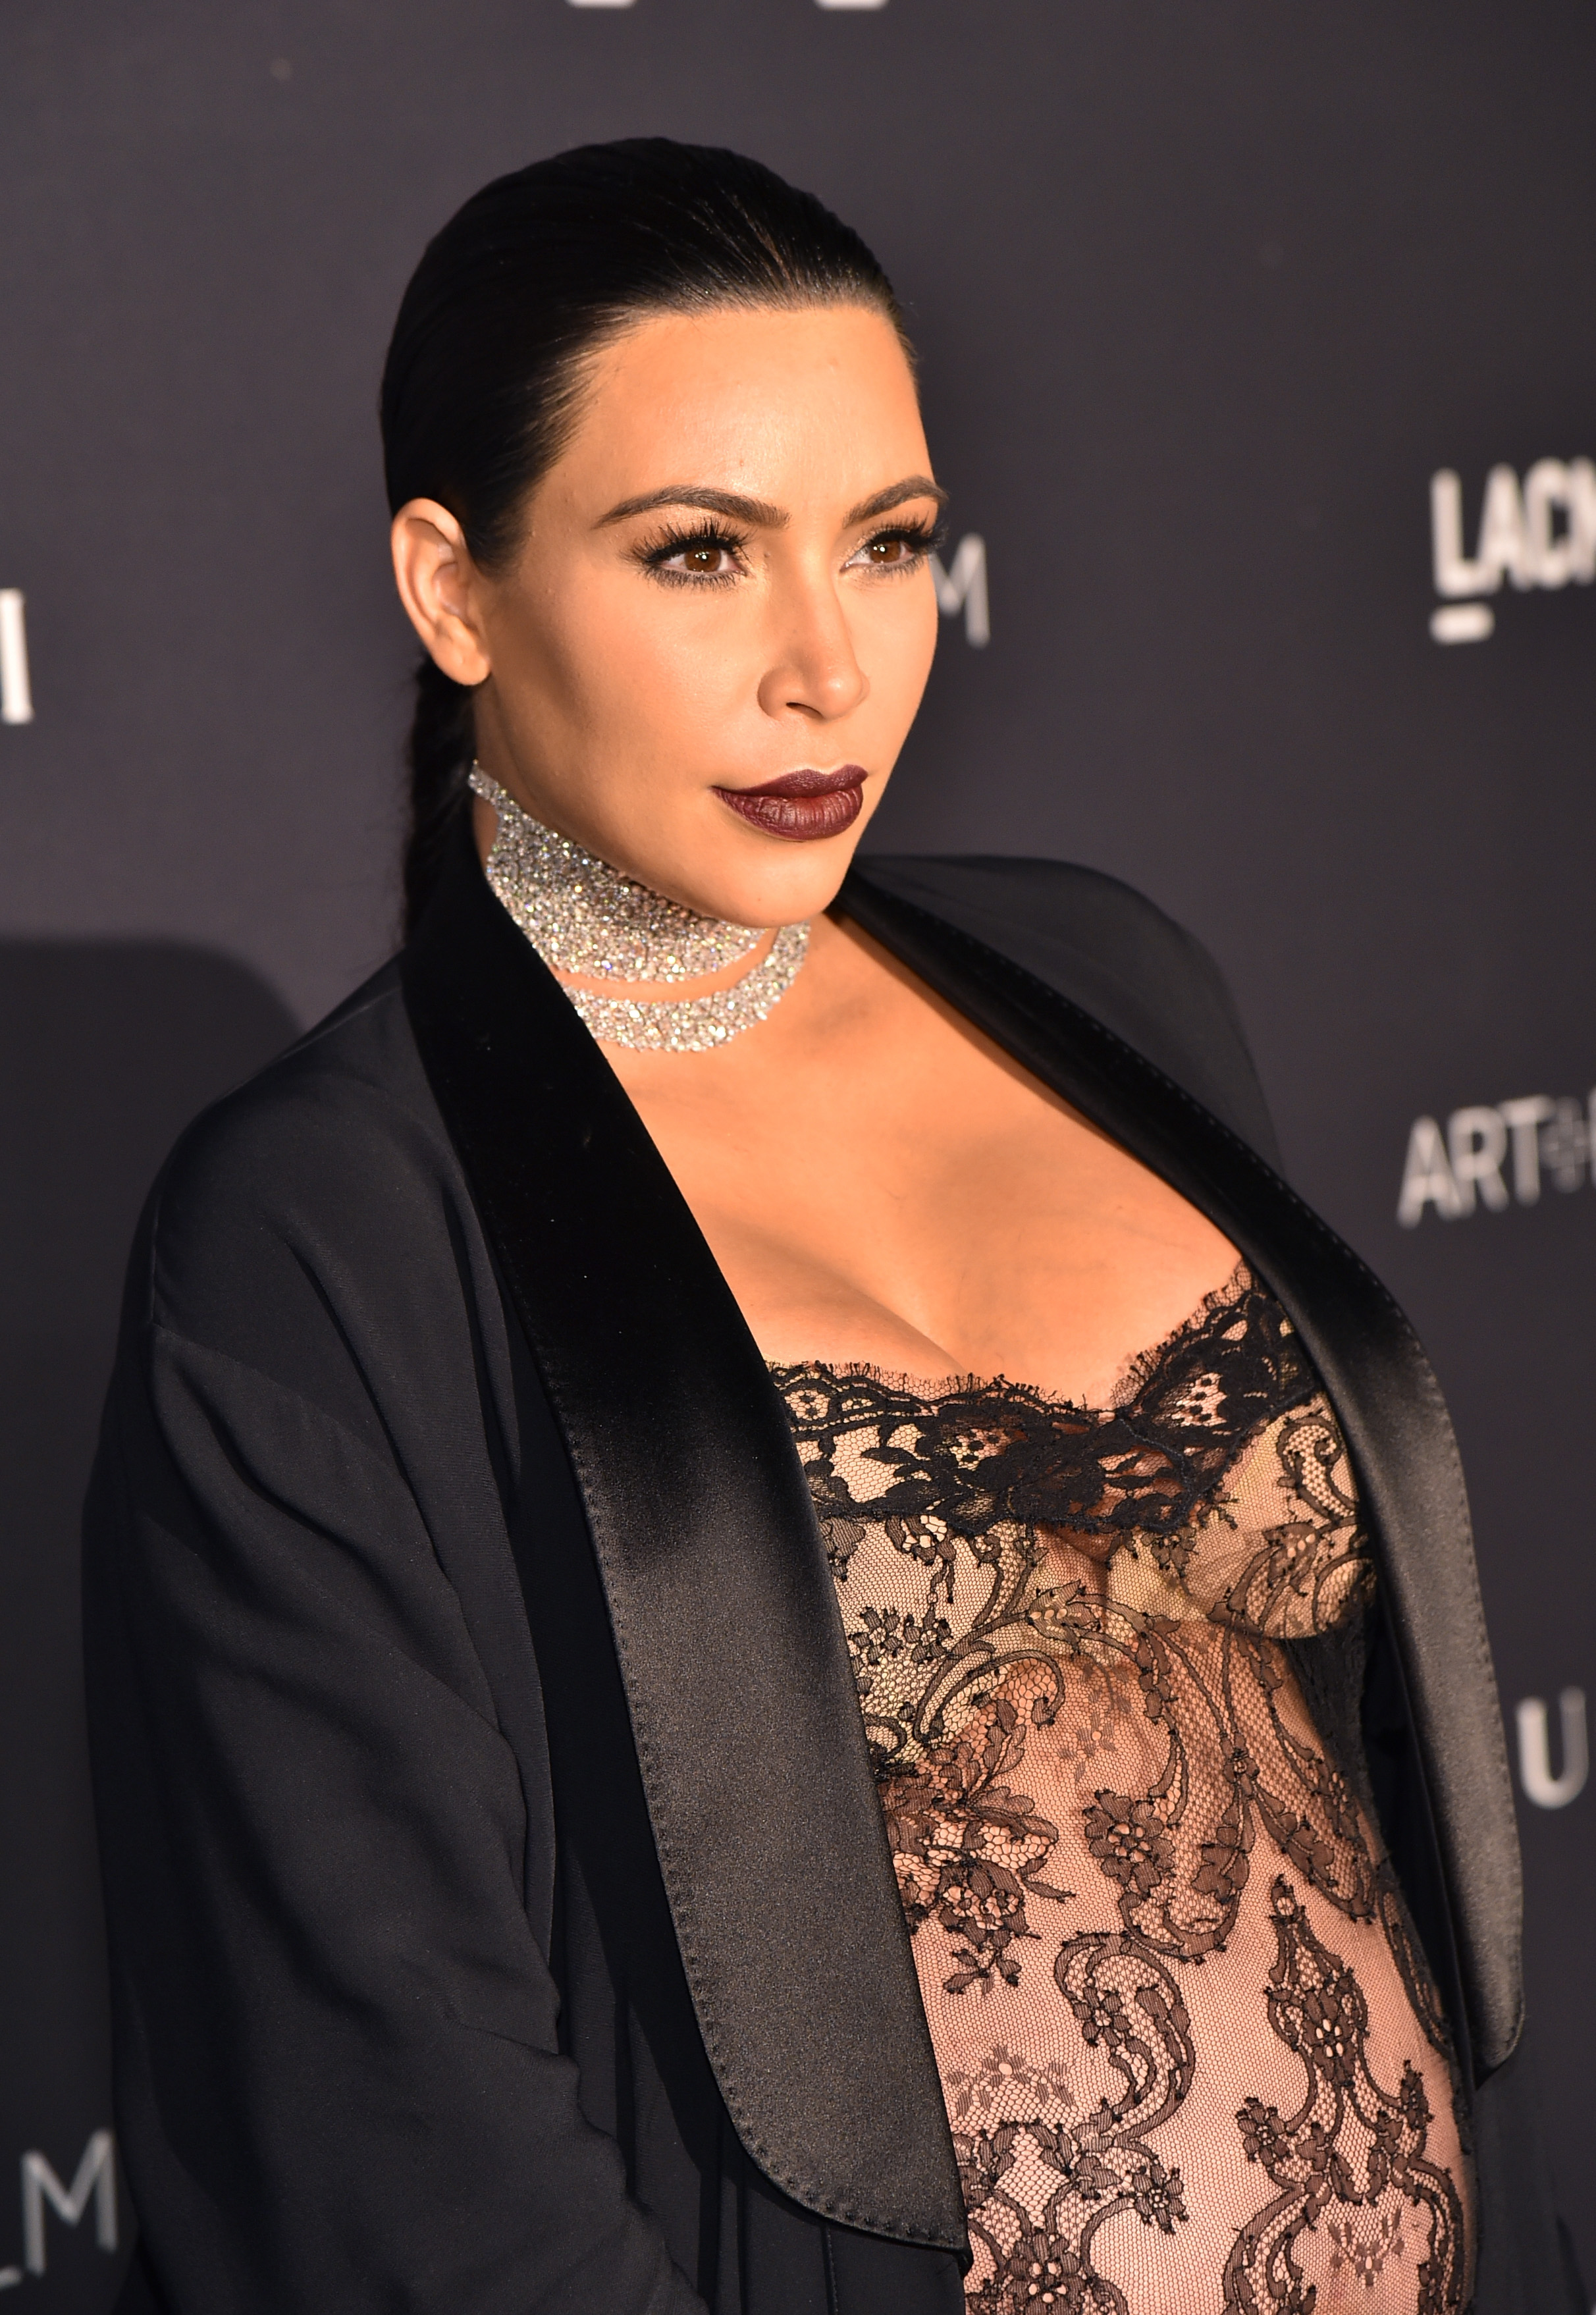 Kim Kardashian West attends LACMA 2015 Art+Film Gala Honoring James ... Kim Kardashian